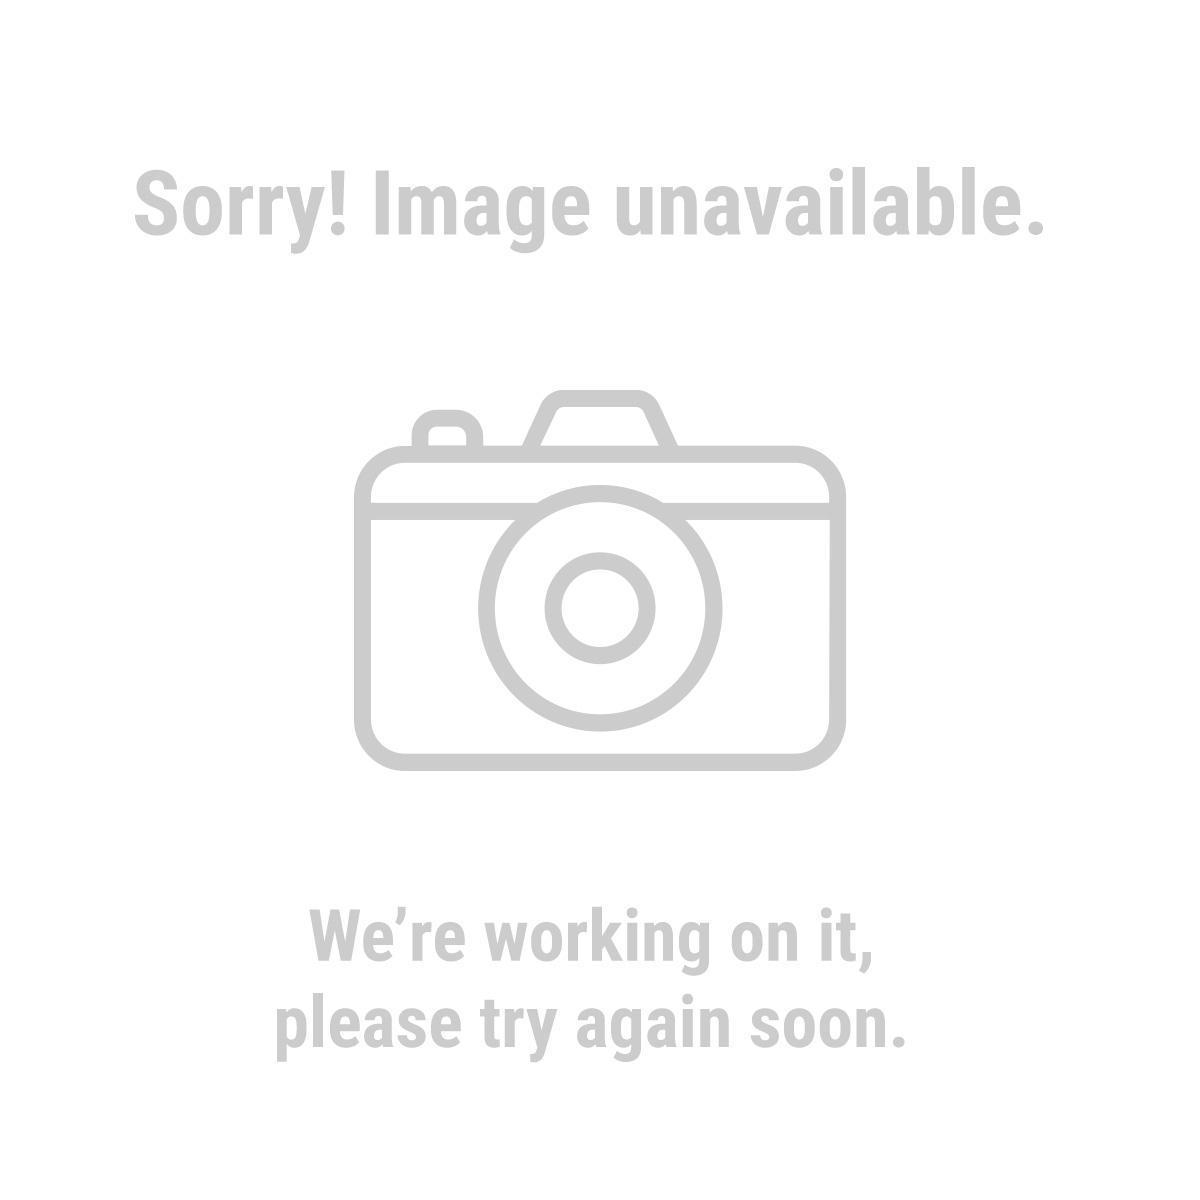 Haul Master Automotive 69874 Triple Ball Trailer Hitch